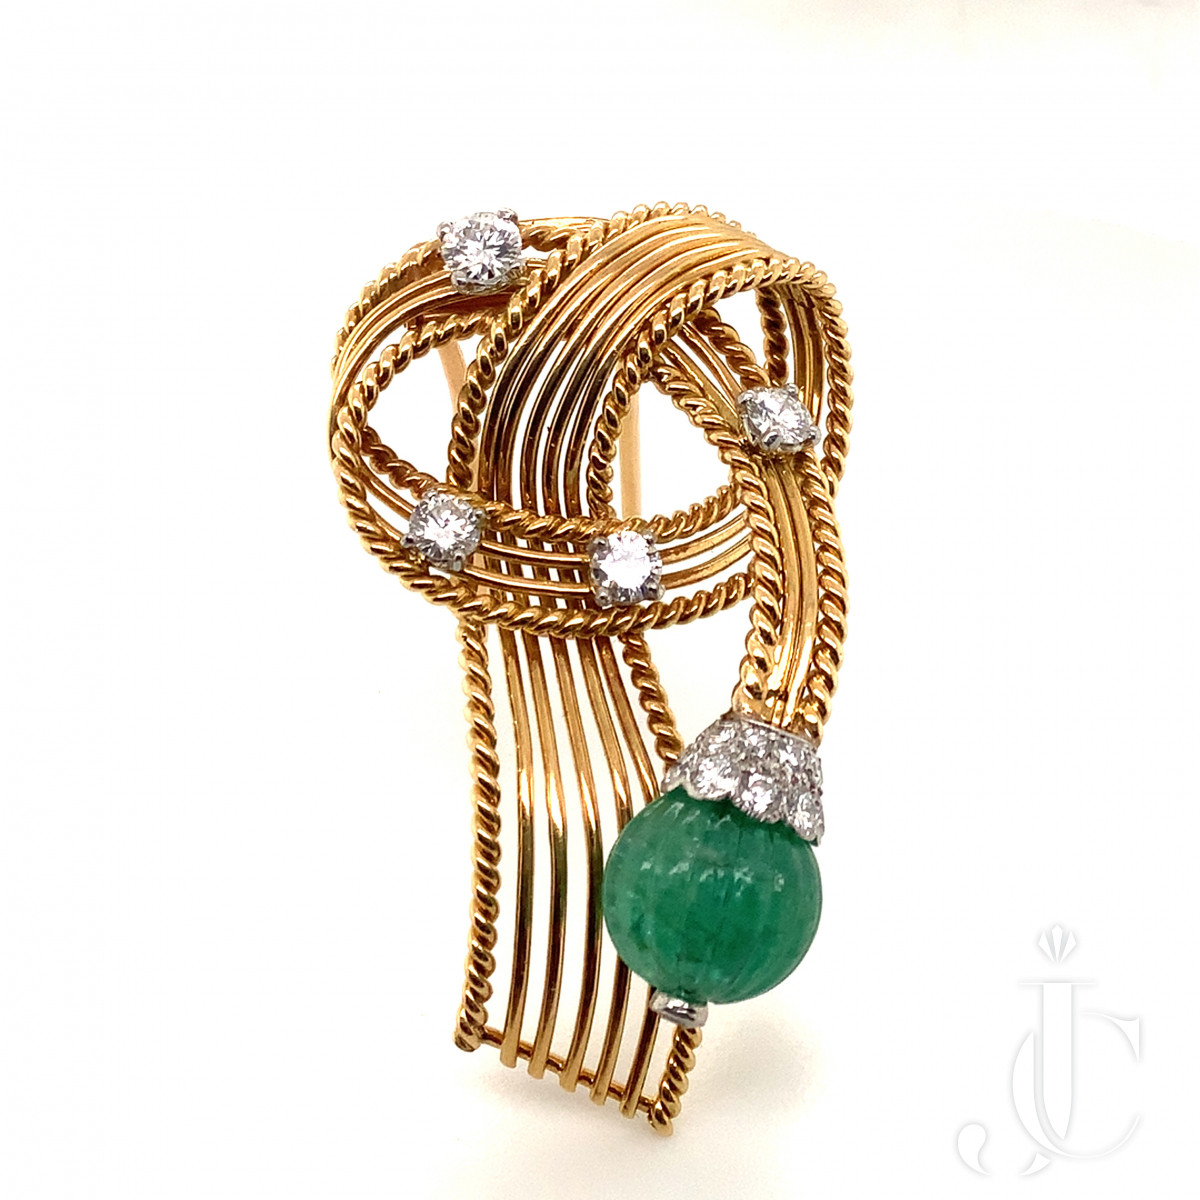 Cartier Carved Emerald and Diamond Brooch